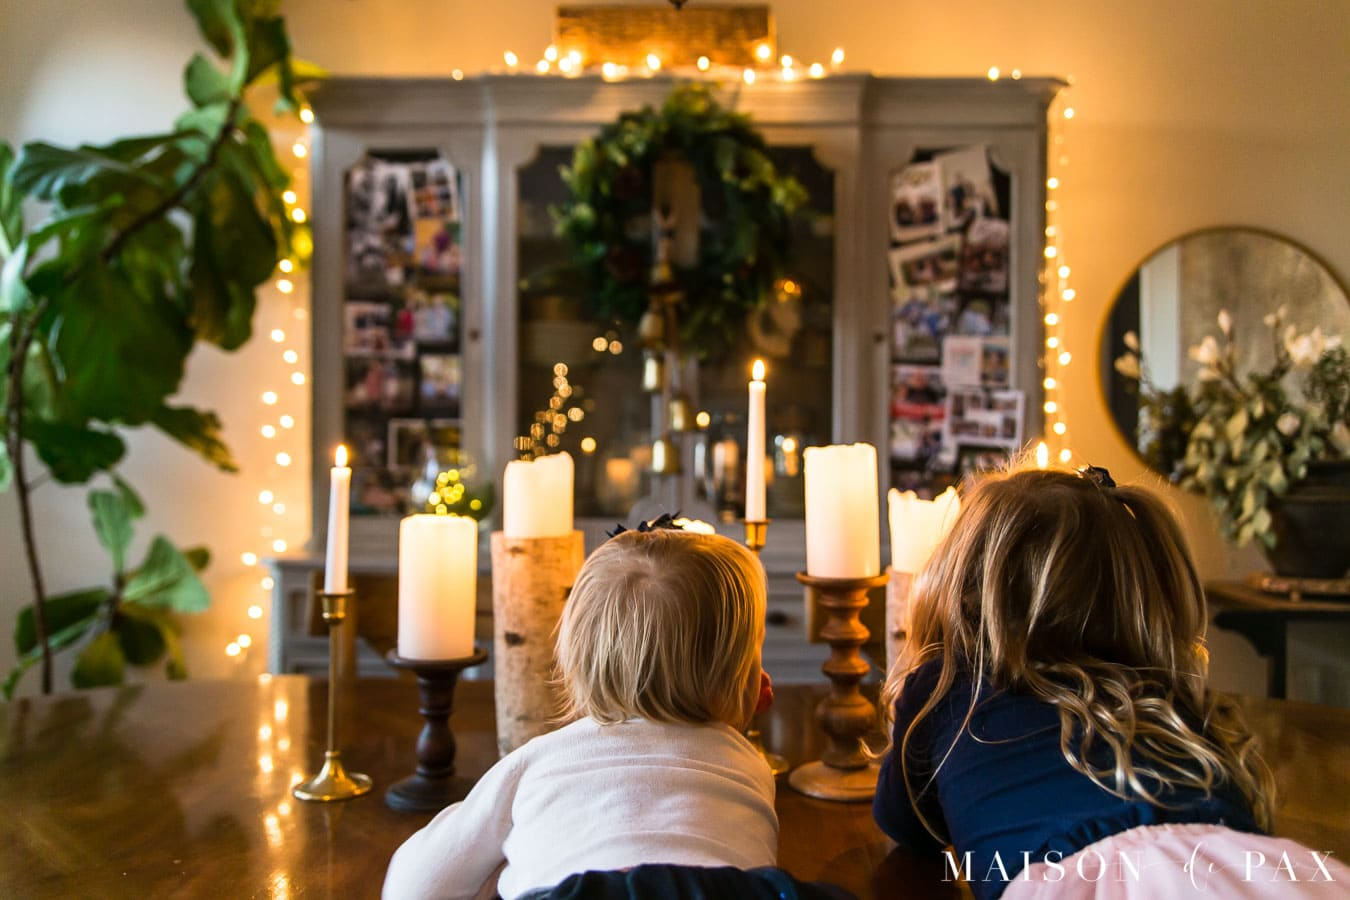 girls looking at candles in Christmas dining room | Maison de Pax